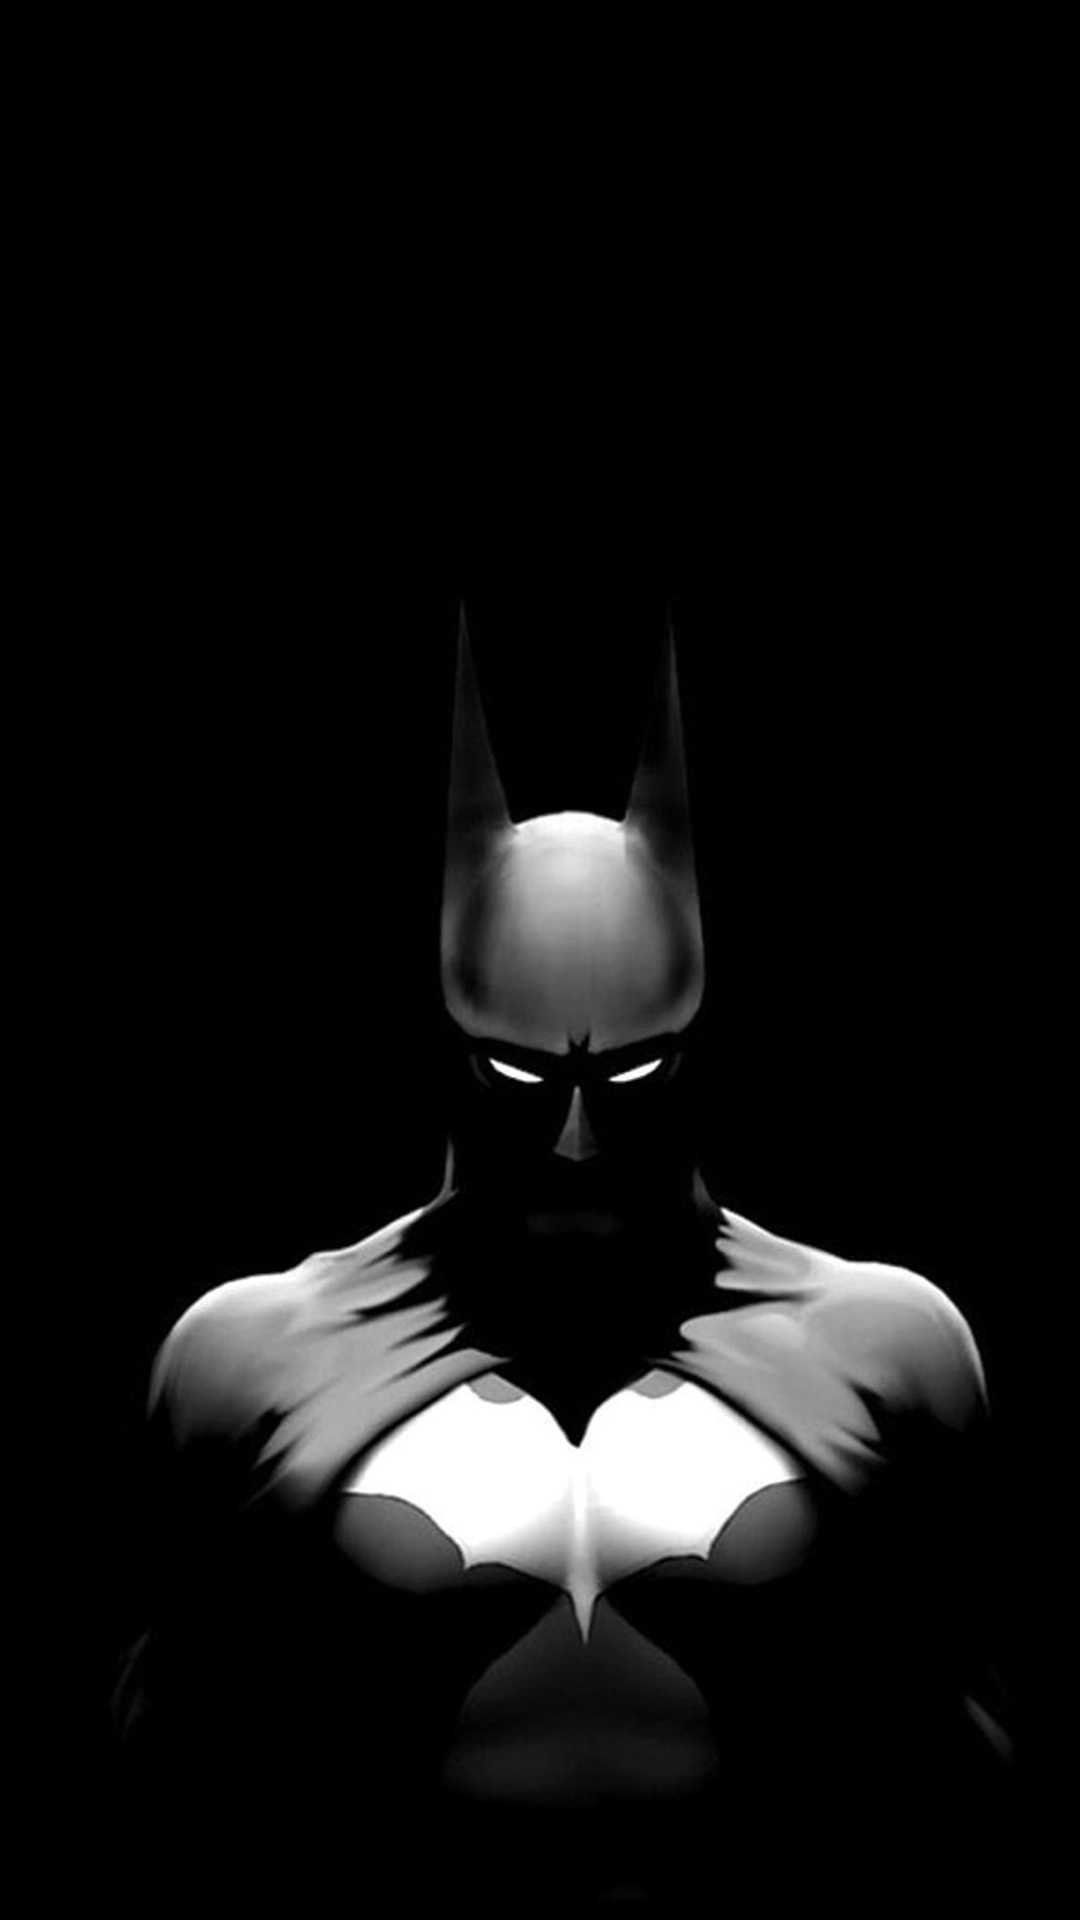 Batman Dark Illustration iPhone 6 Plus HD Wallpaper HD Wallpapers 1080x1920